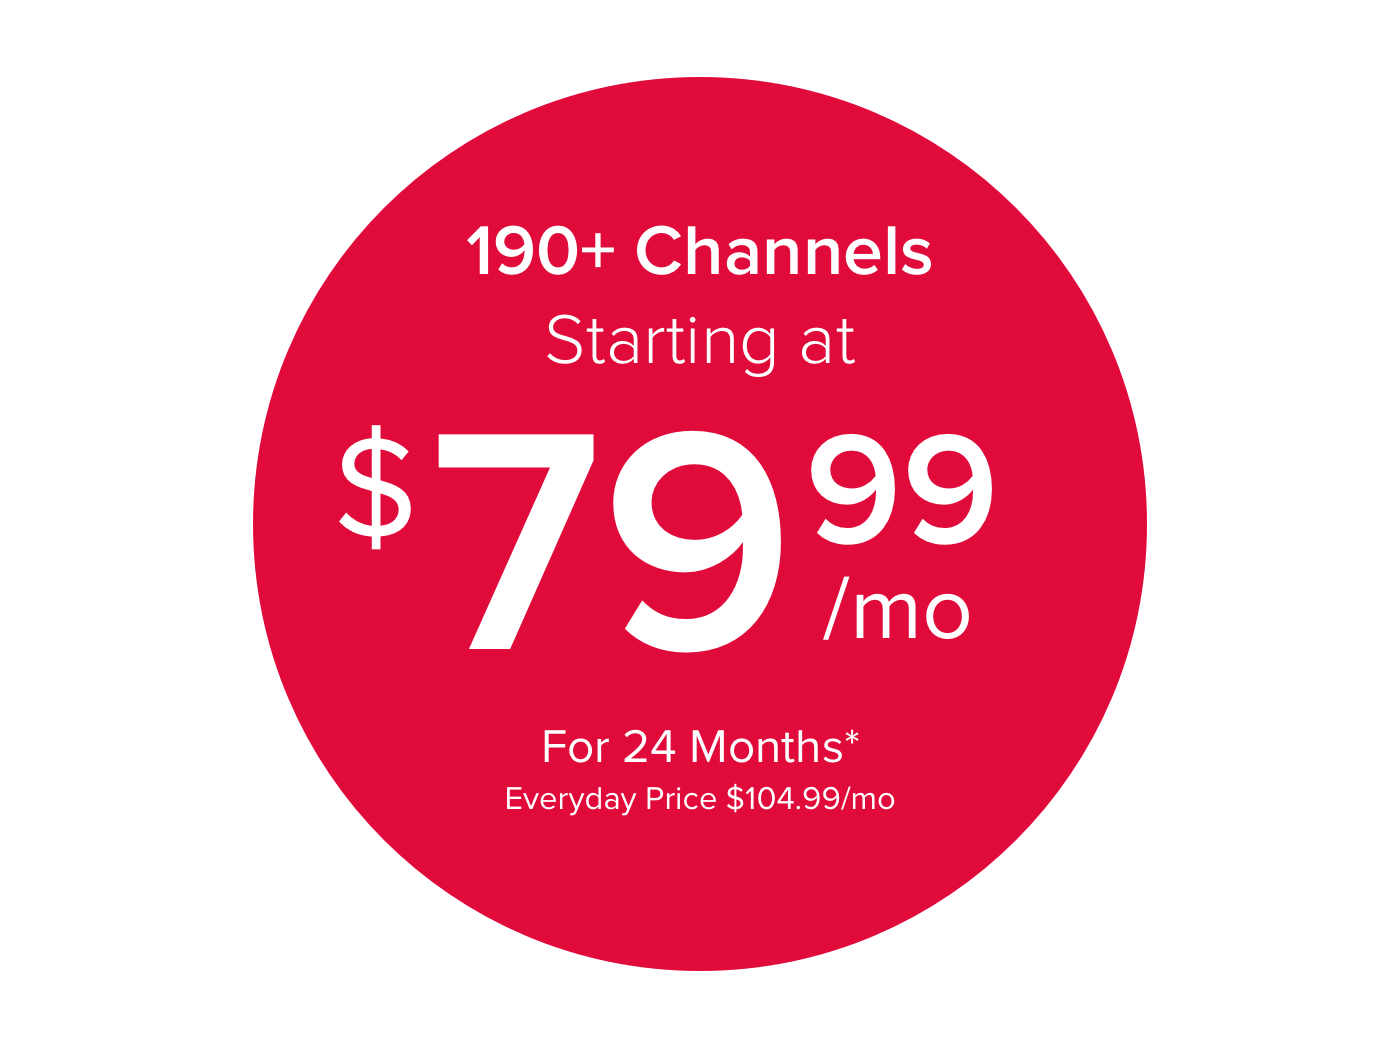 190 plus Channels Starting at $79.99/mo for 24 Months*  Everyday price $104.99/mo